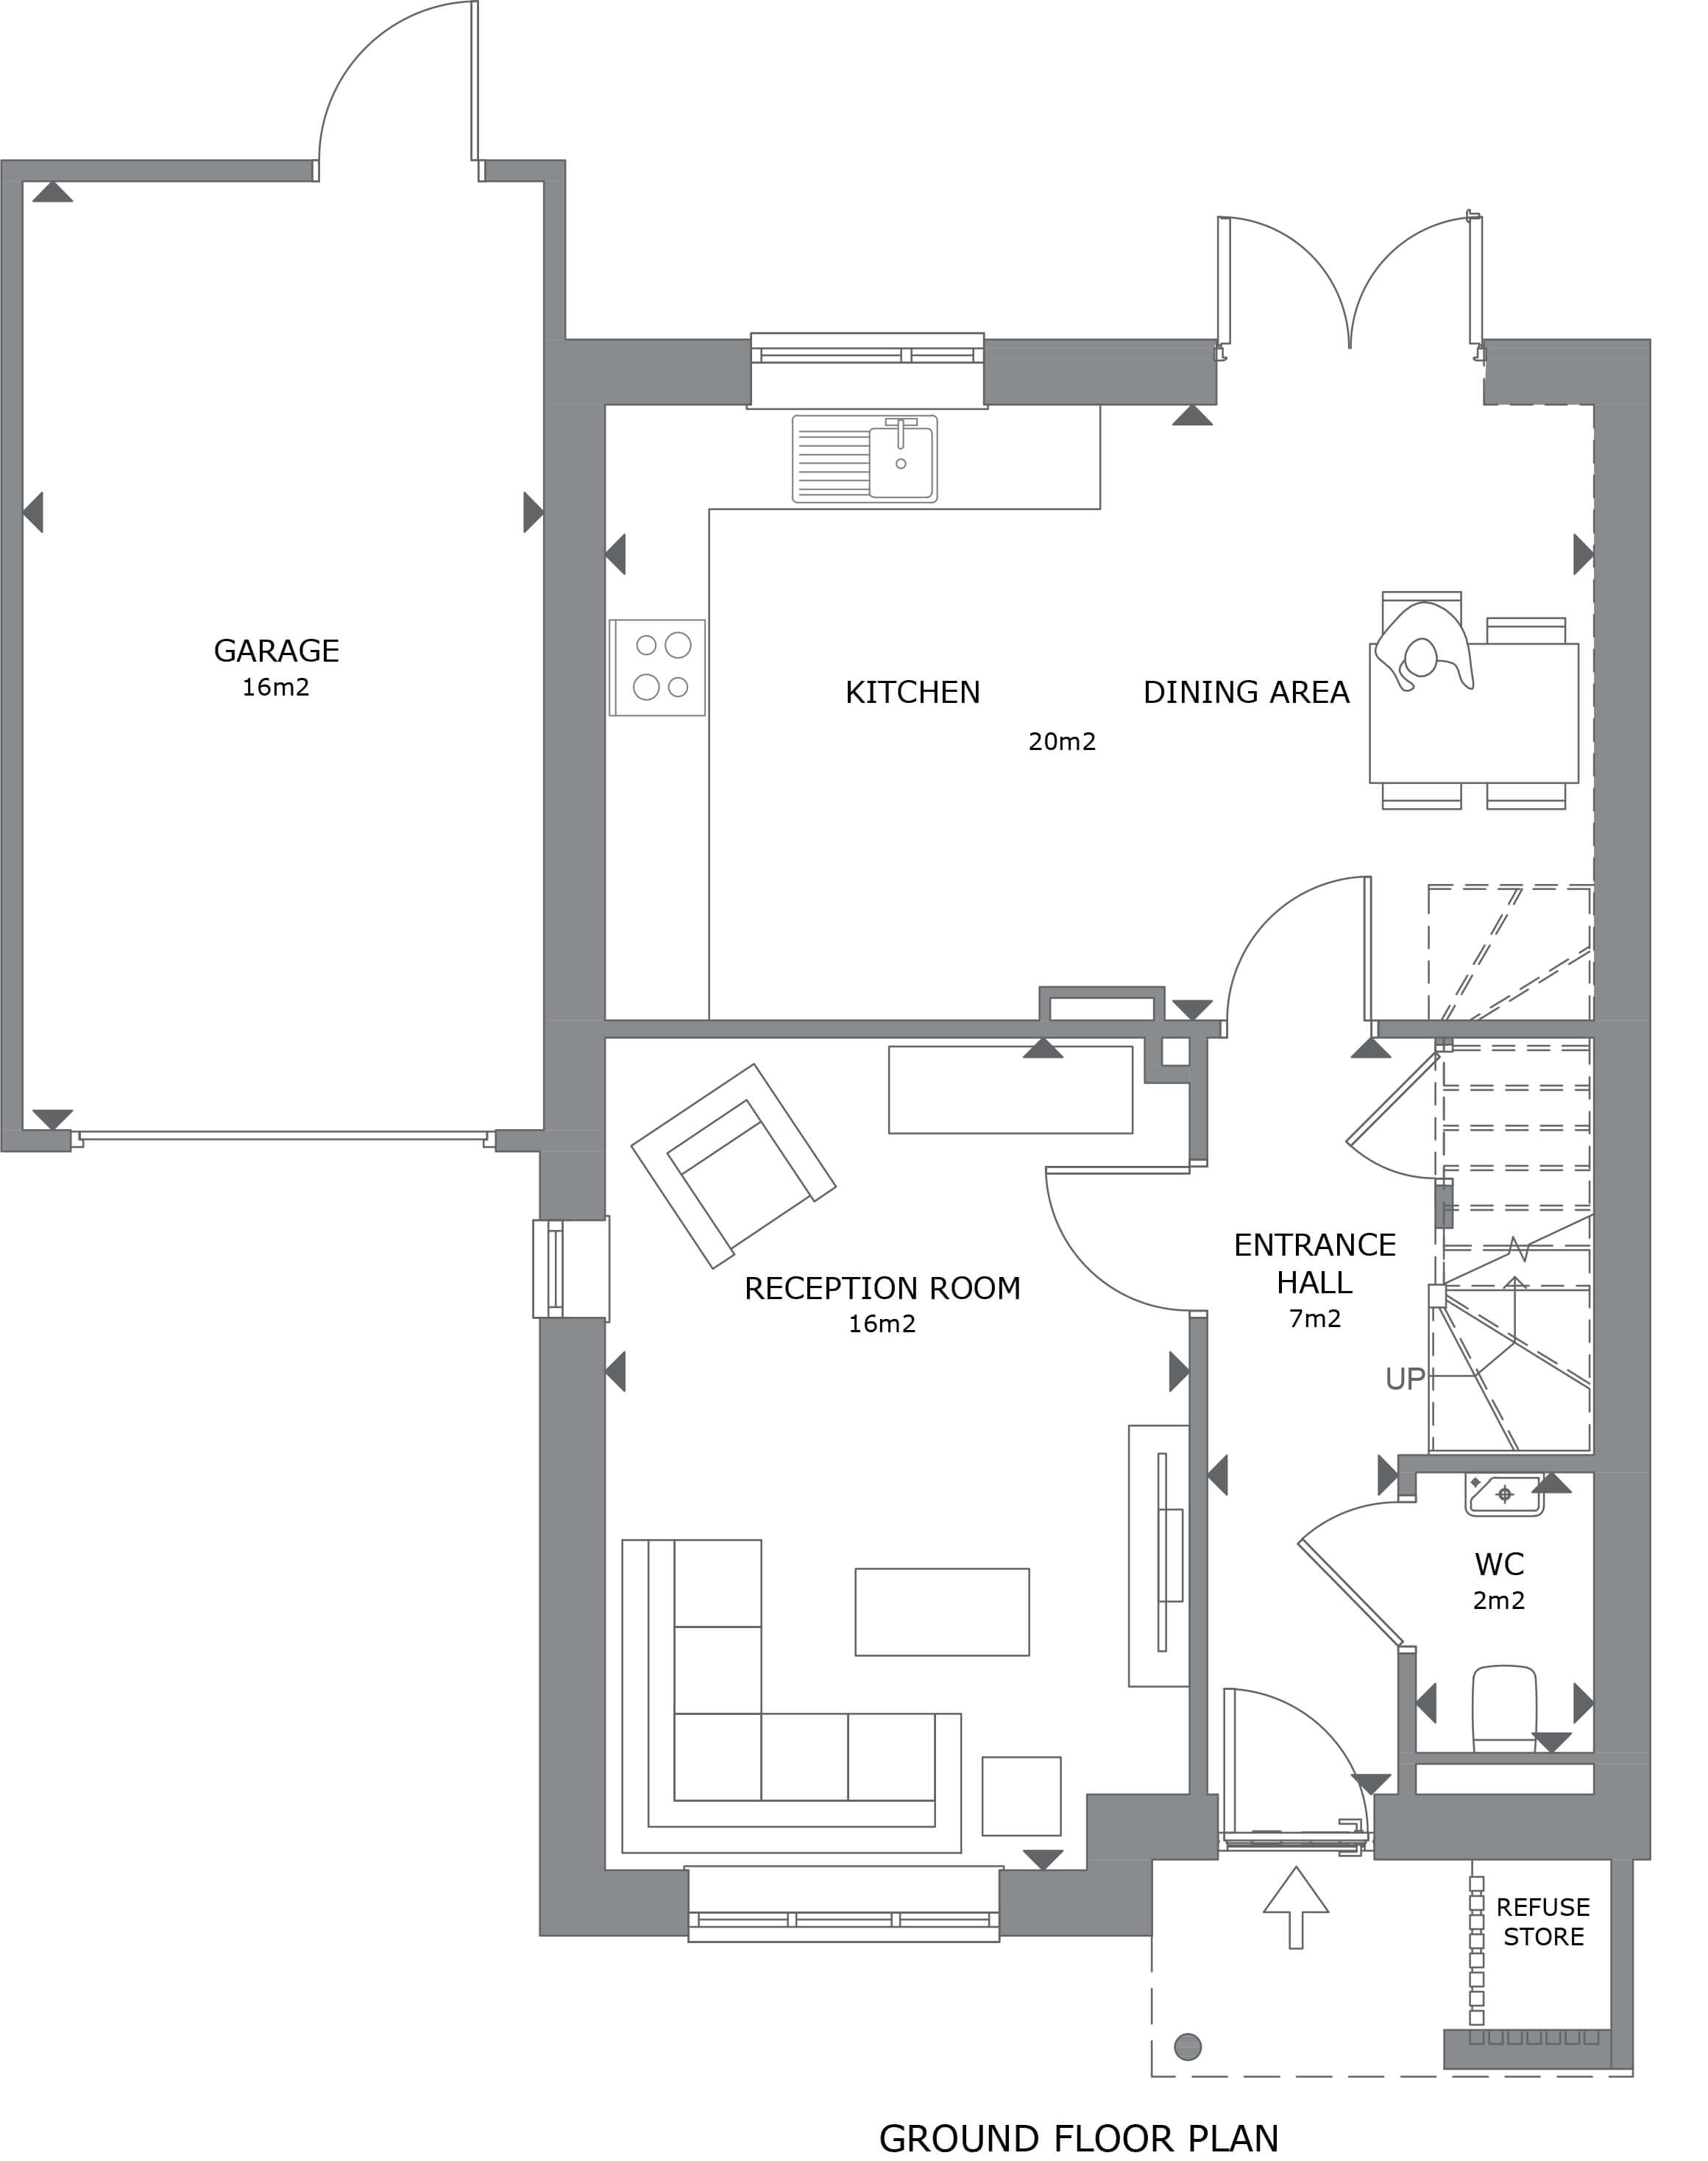 013 Crantock House 39 Ground Floor Plan Marketing - House 53 - 3 Bedroom Detached Home